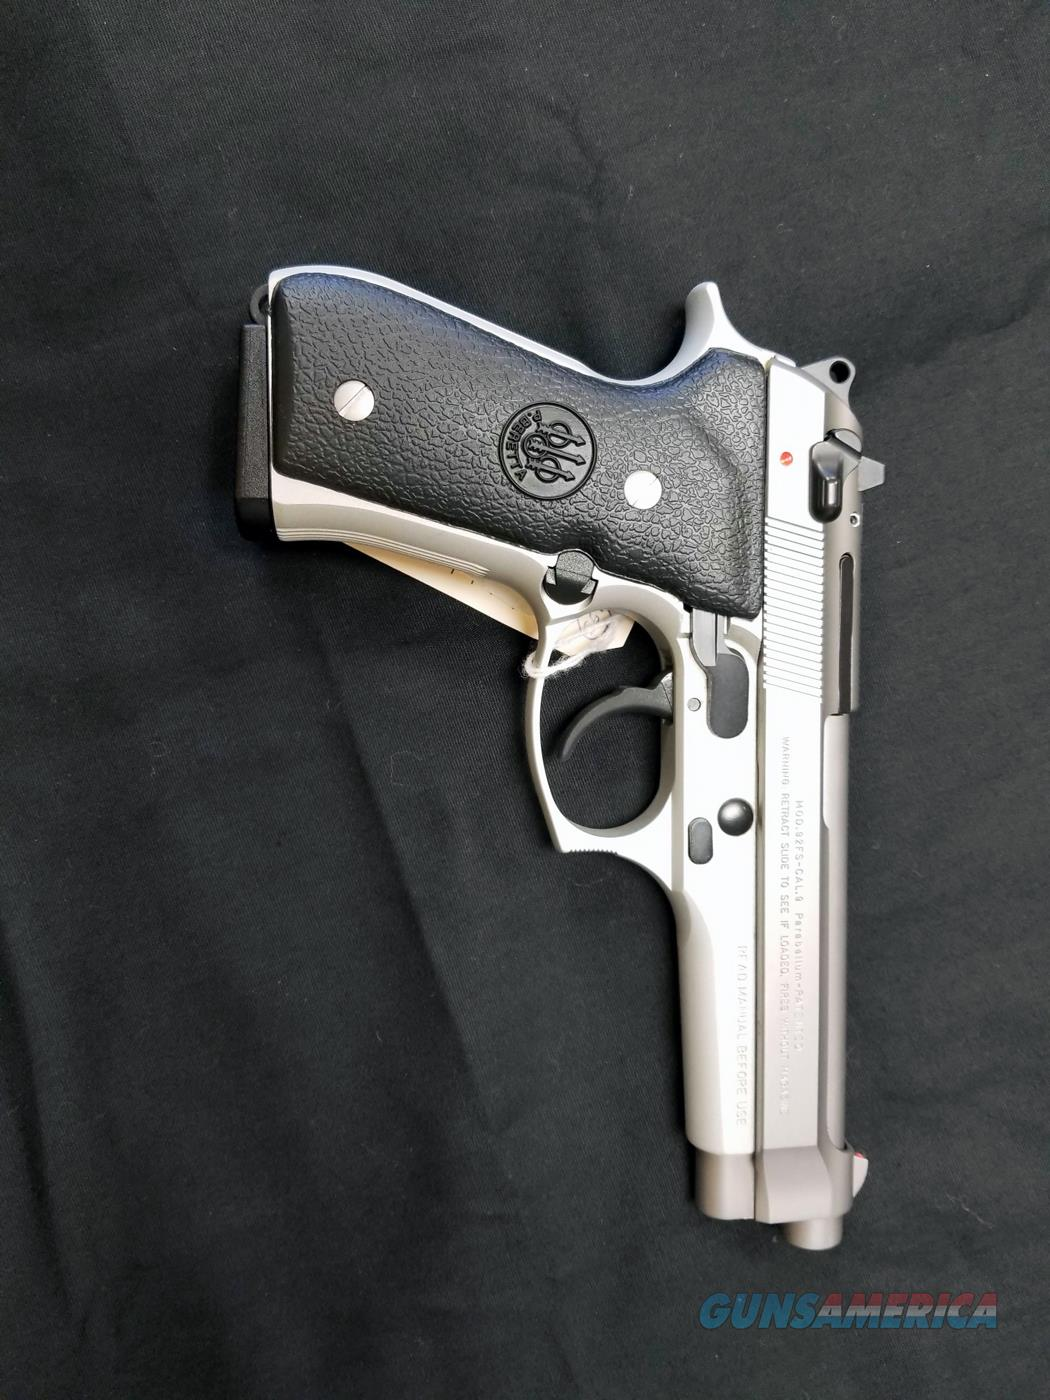 Beretta Model 92 FS Stainless Steel Inox Made in Italy Mint Condition  Guns > Pistols > Beretta Pistols > Model 92 Series